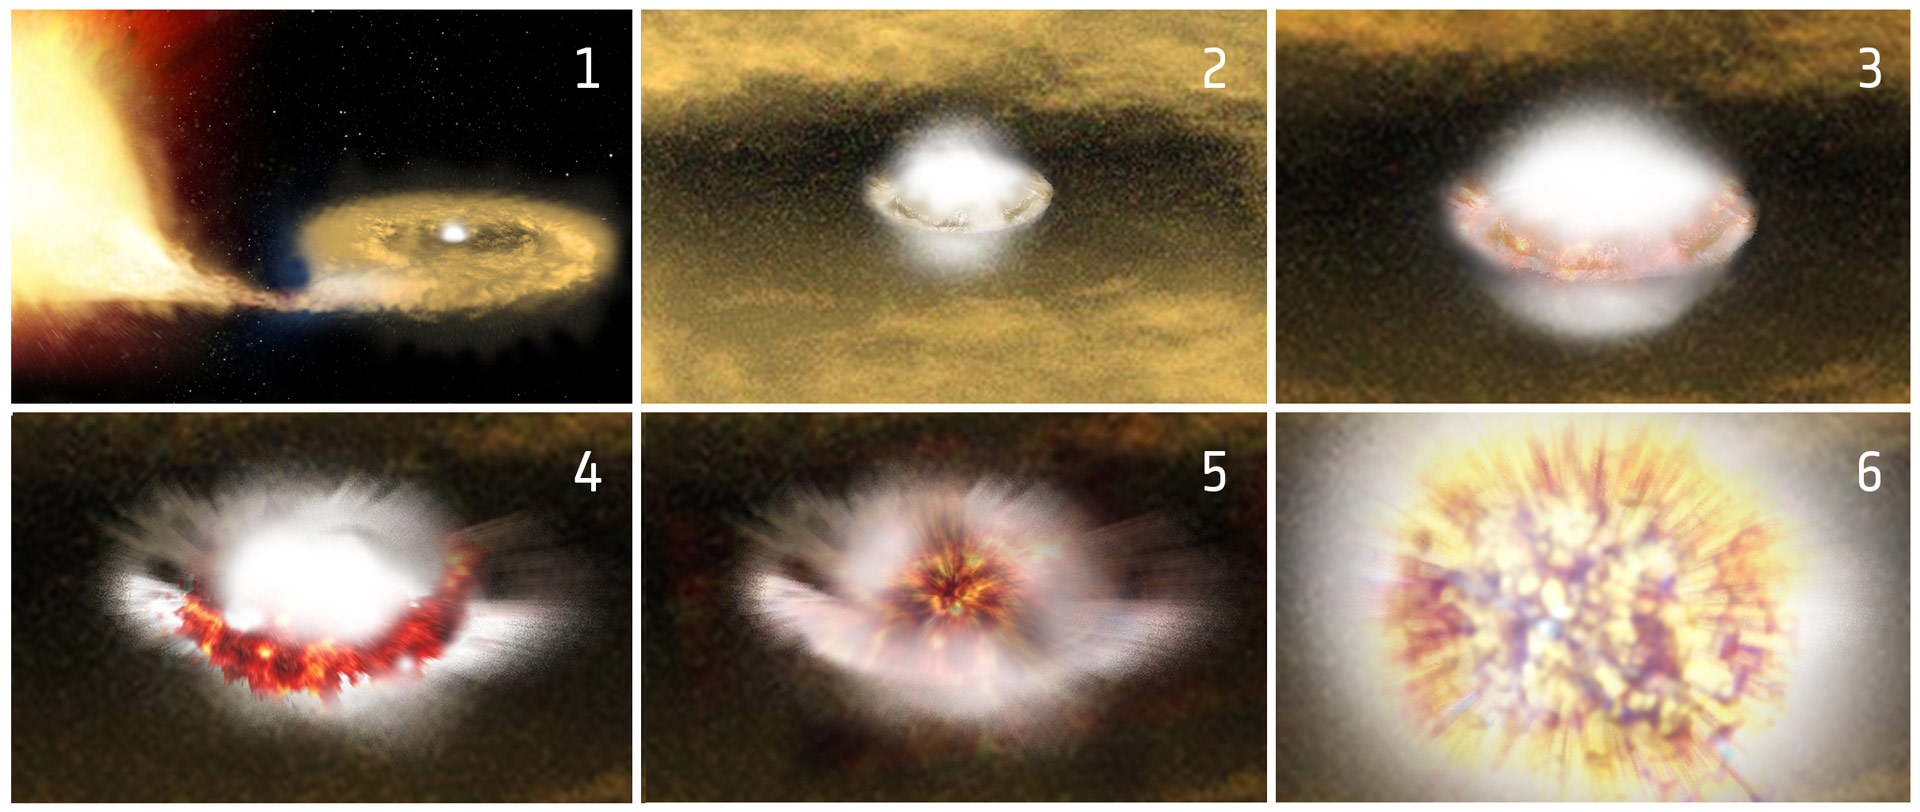 Proof That White Dwarfs Can Reignite and Explode as Supernovae